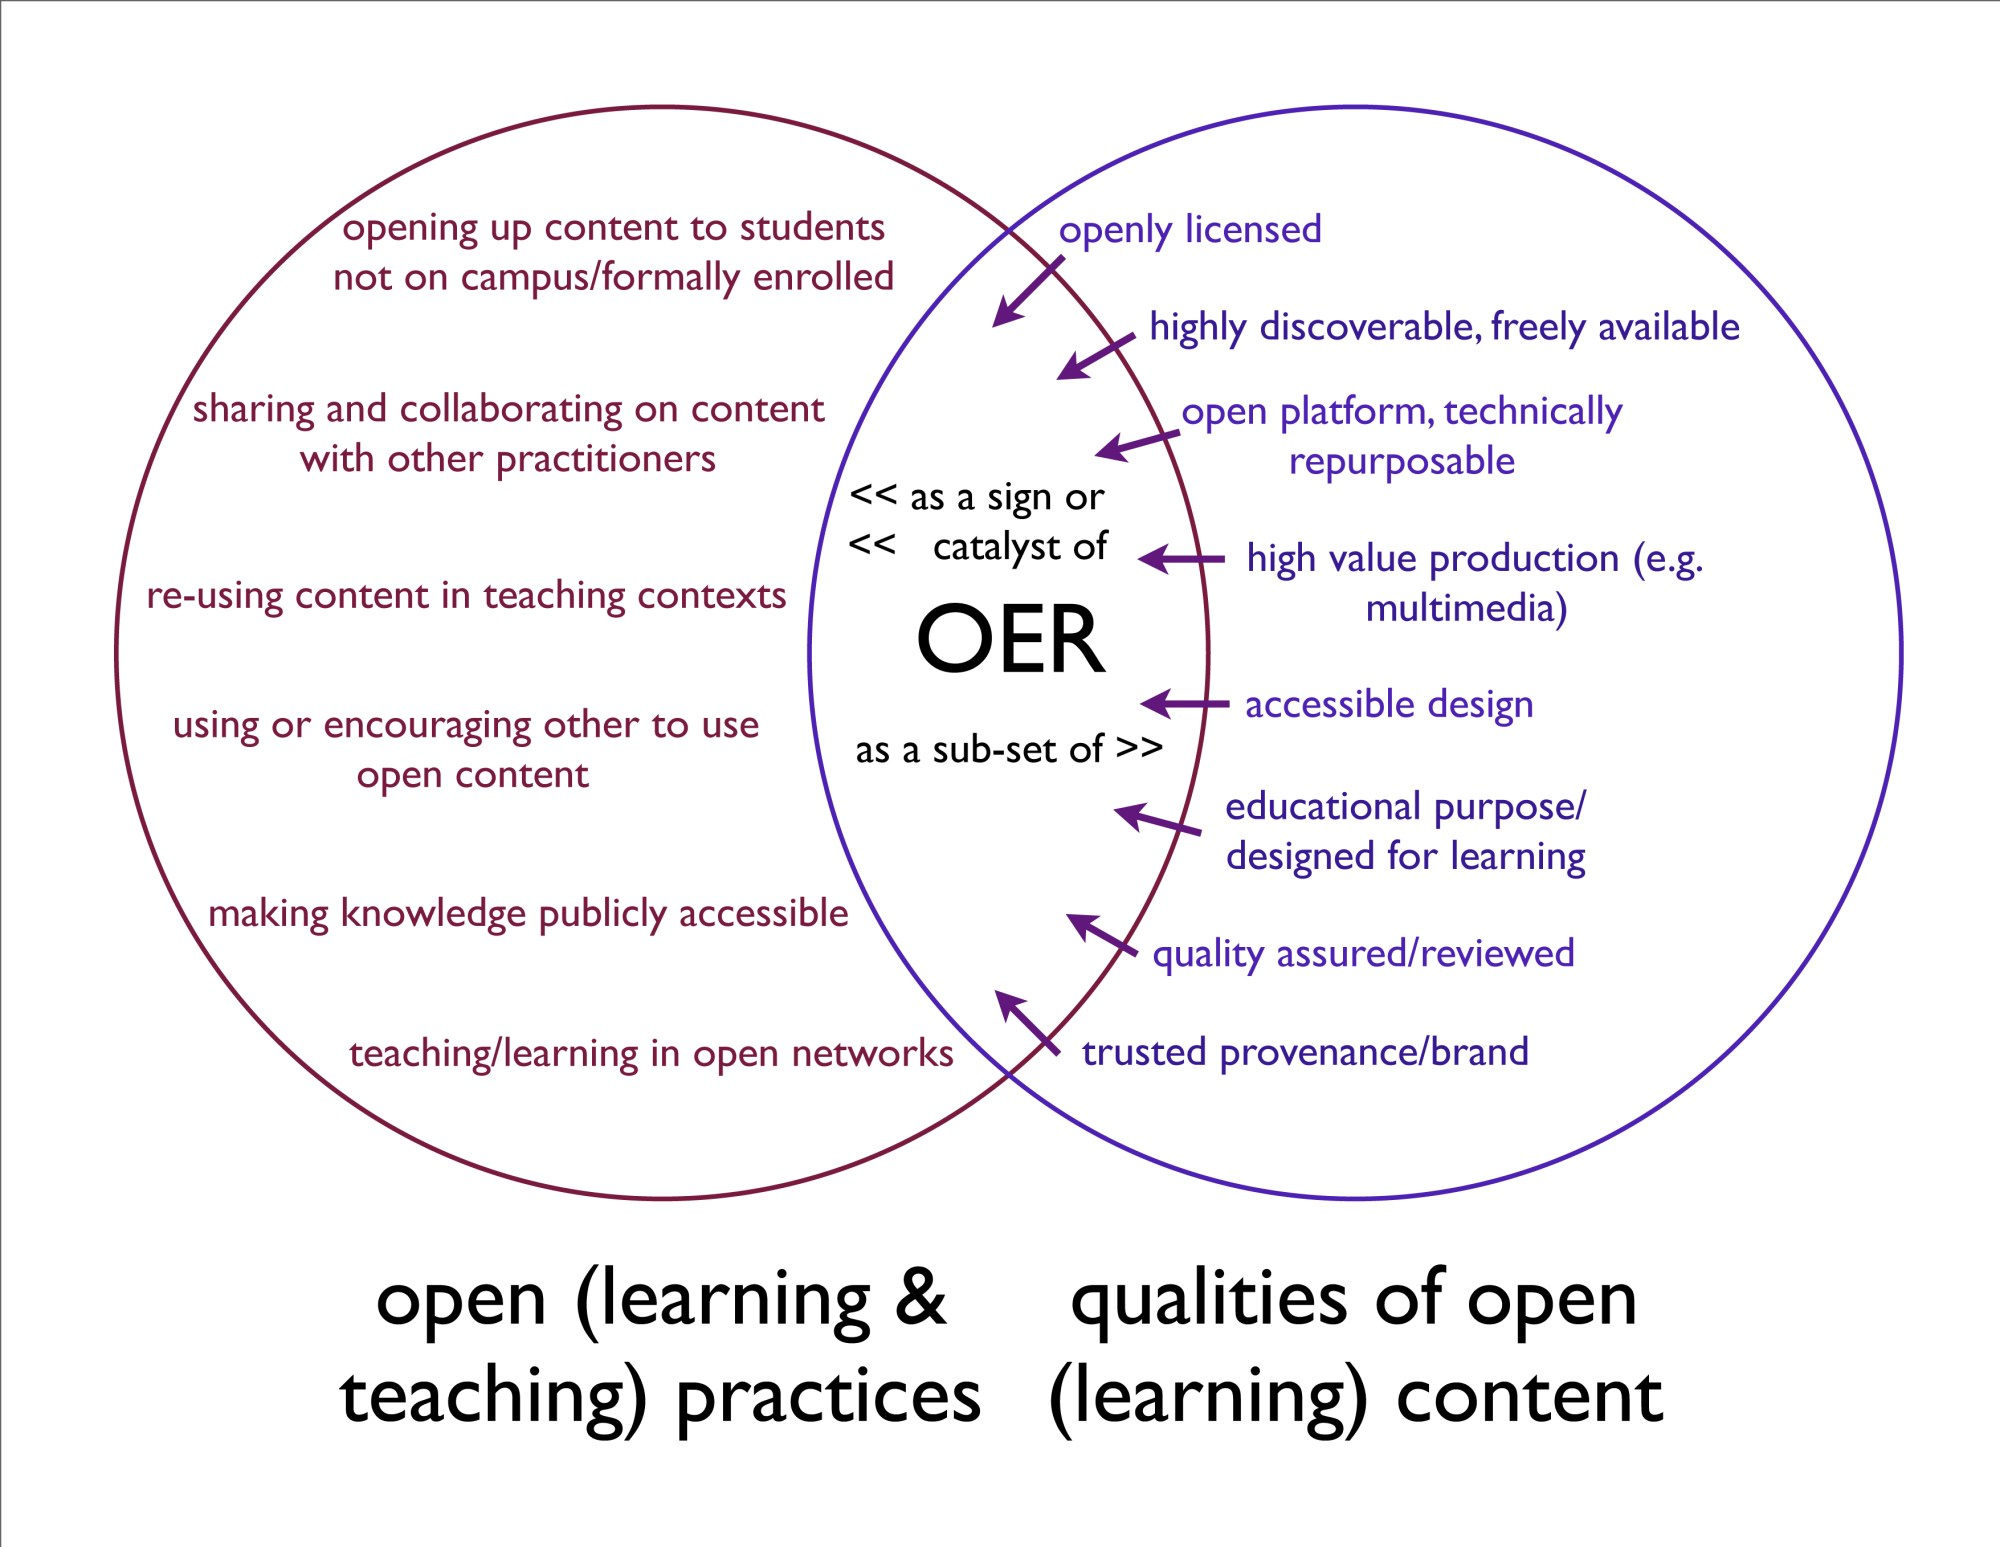 hight resolution of venn diagram with open learning and teaching practices in one cirlce and qualities of open learning